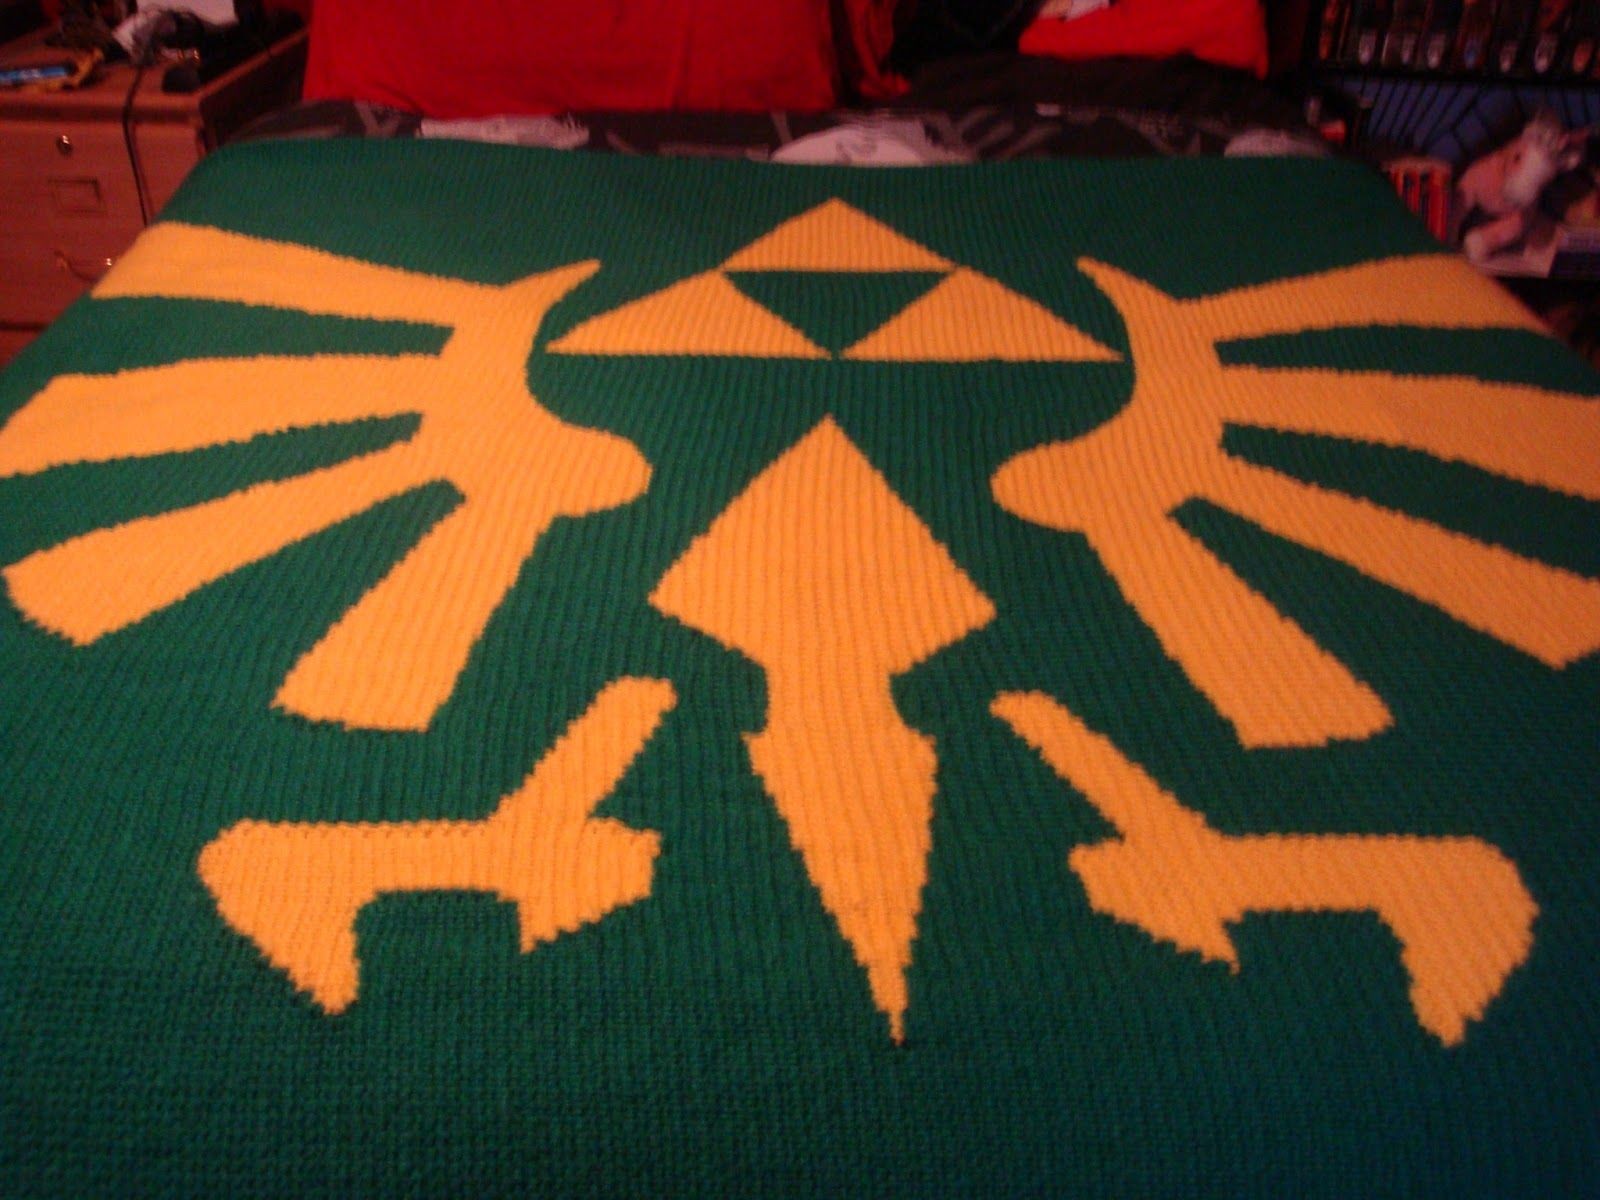 Legend Of Zelda Knitting Pattern : Zelda knitted blanket craft videogames pinterest